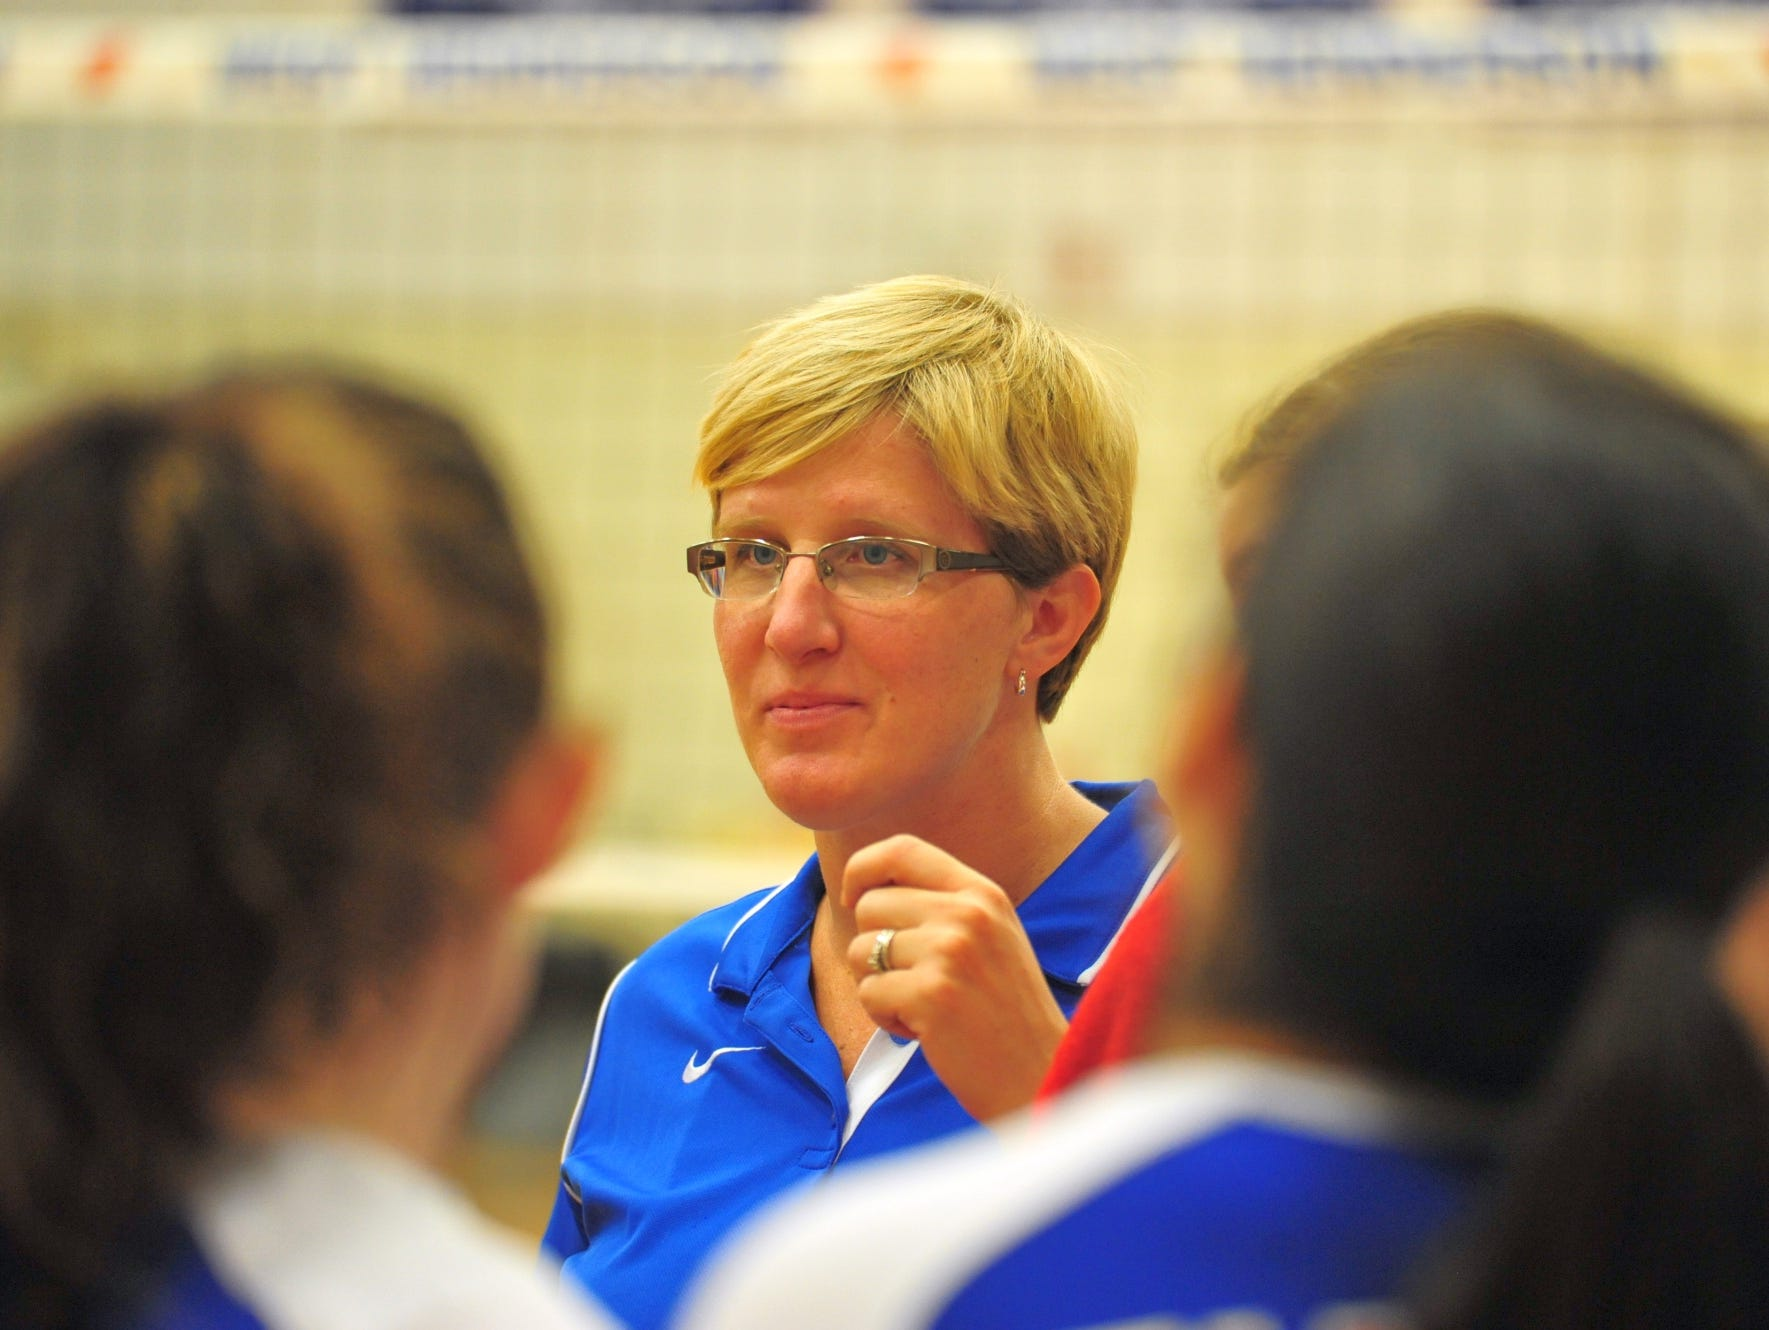 West Henderson volleyball coach Tiffany Lowrance and the Falcons are the host school for the Aug. 8 Mountain Bash scrimmage event.